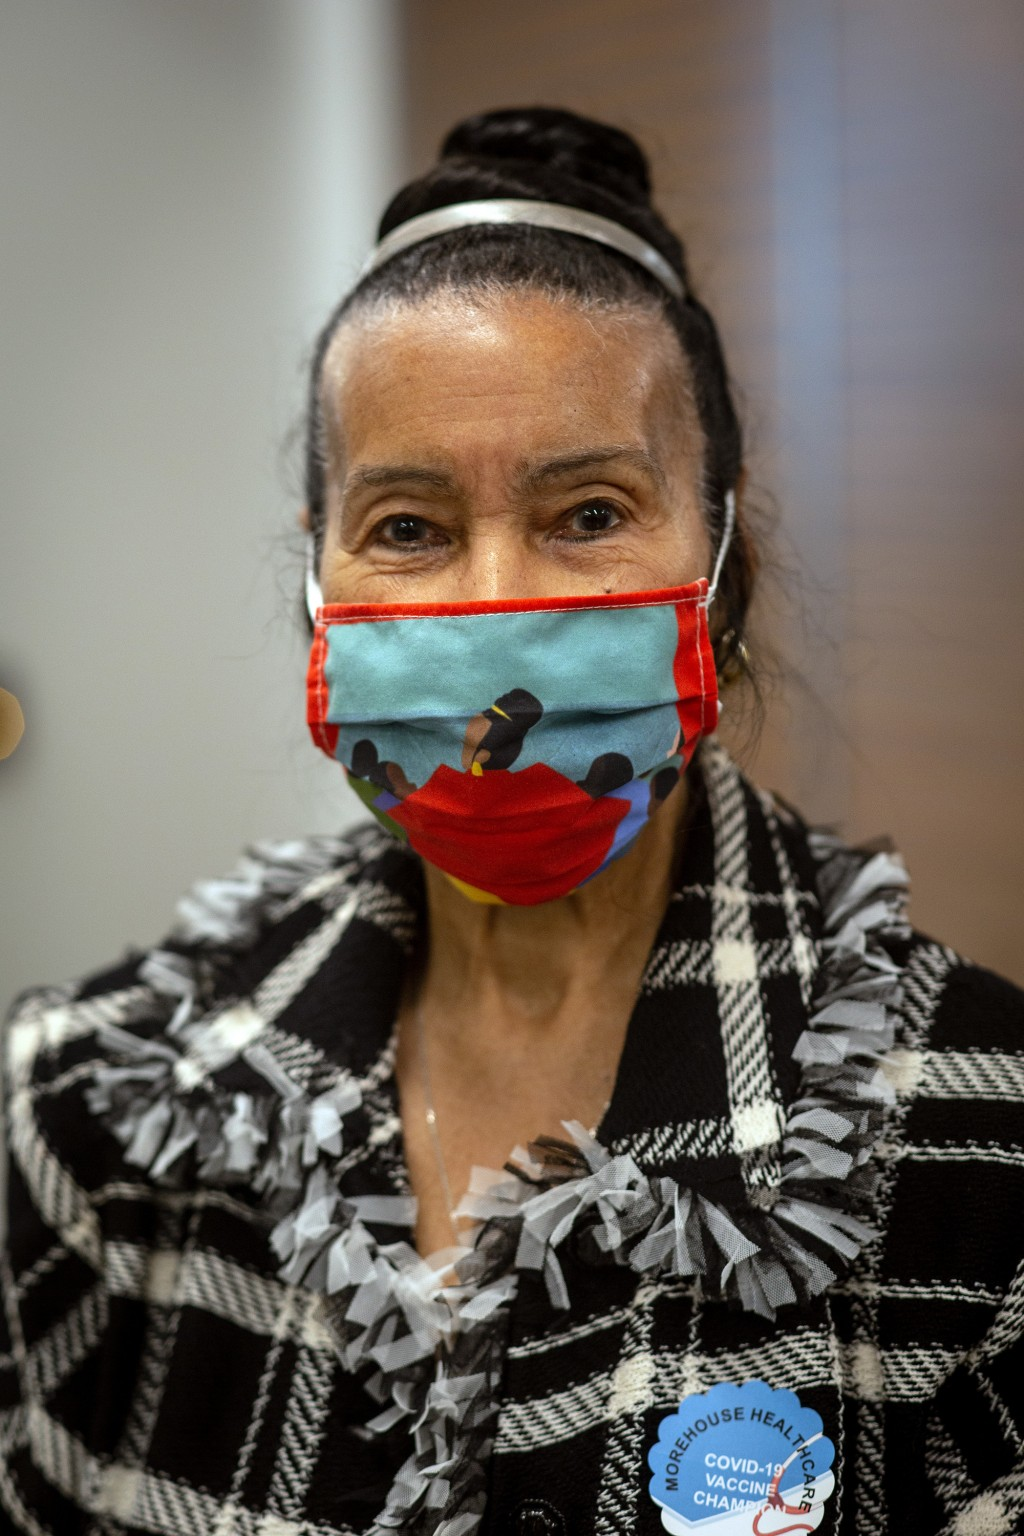 Civil rights leader Xernona Clayton is shown after receiving her COVID-19 vaccination on Tuesday, Jan. 5, 2021, at the Morehouse School of Medicine in...